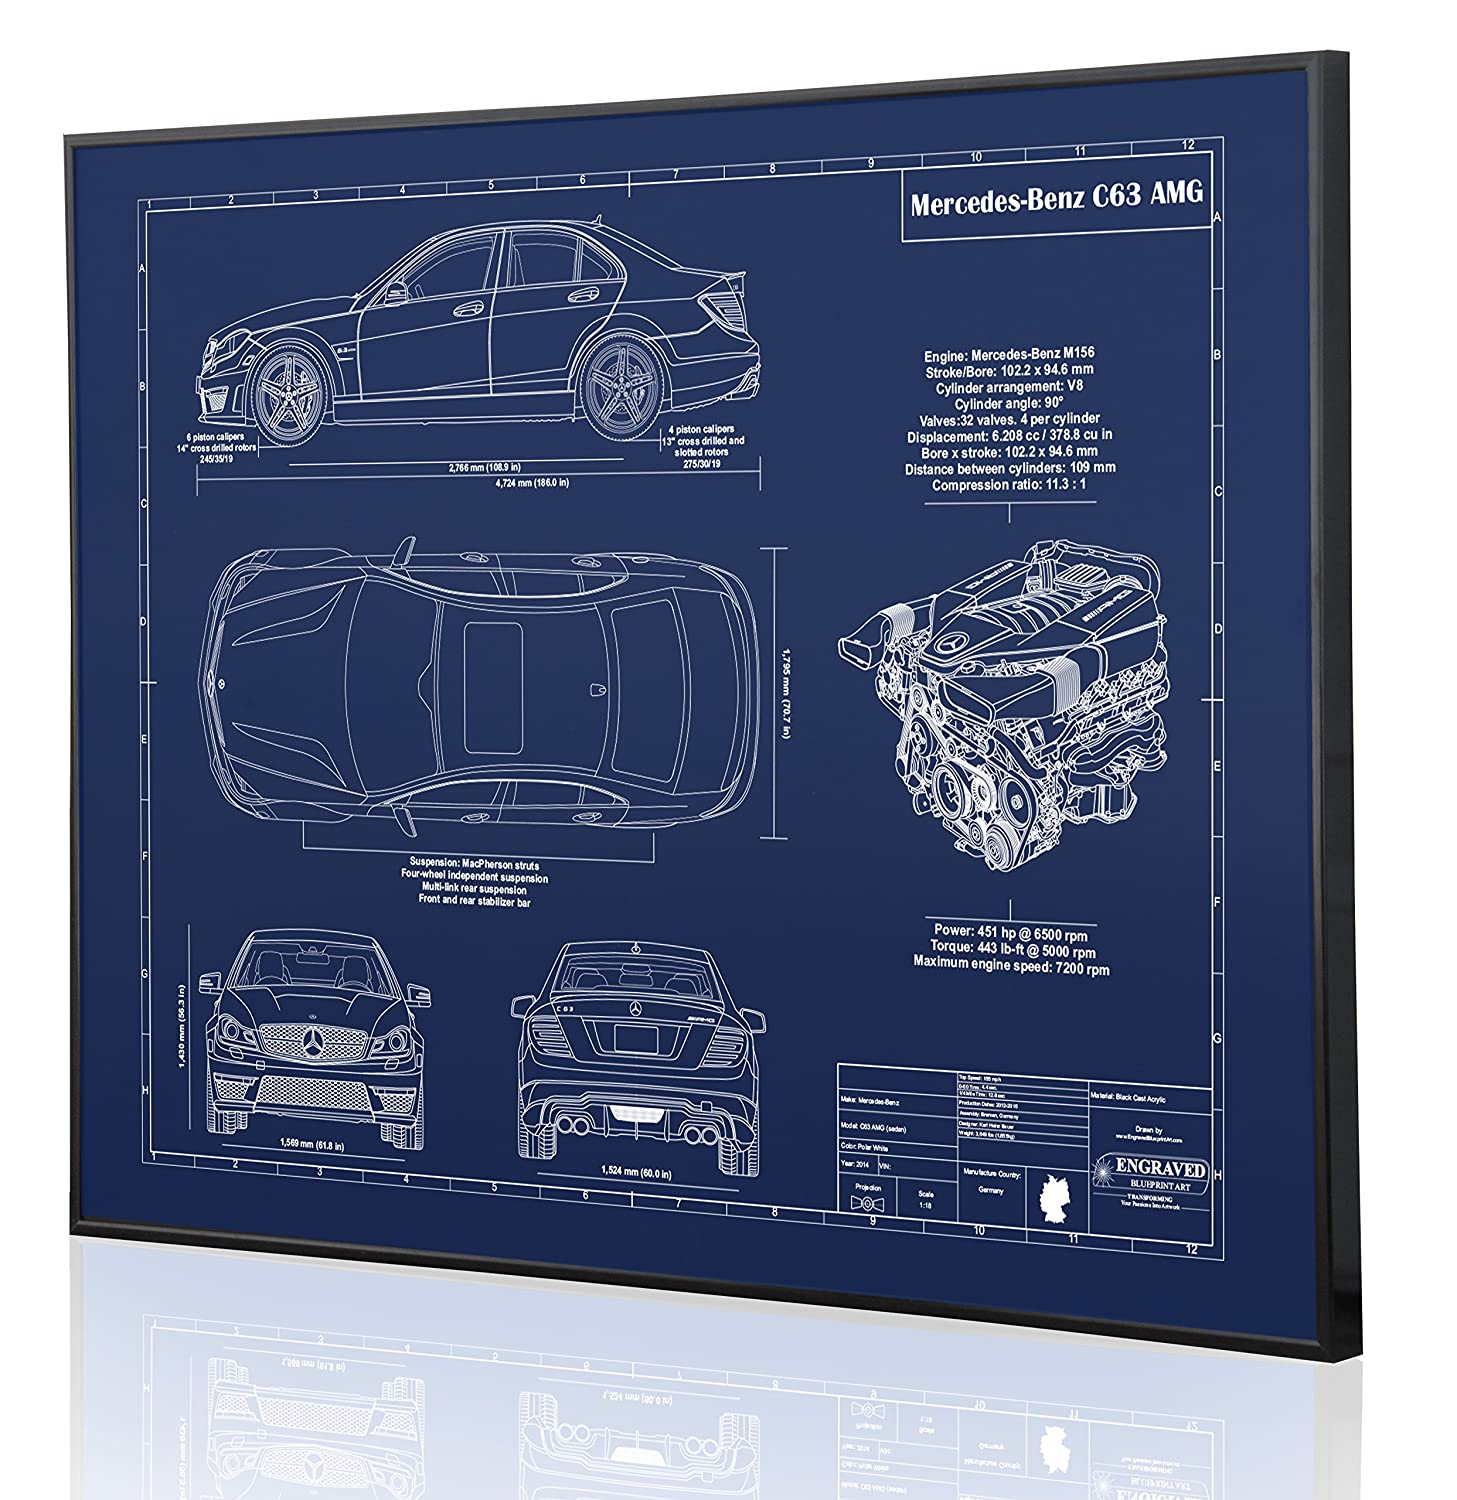 Amazon.com: Mercedes-Benz C63 AMG Sedan Blueprint Artwork-Laser Marked &  Personalized-The Perfect Mercedes-Benz Gifts: Handmade